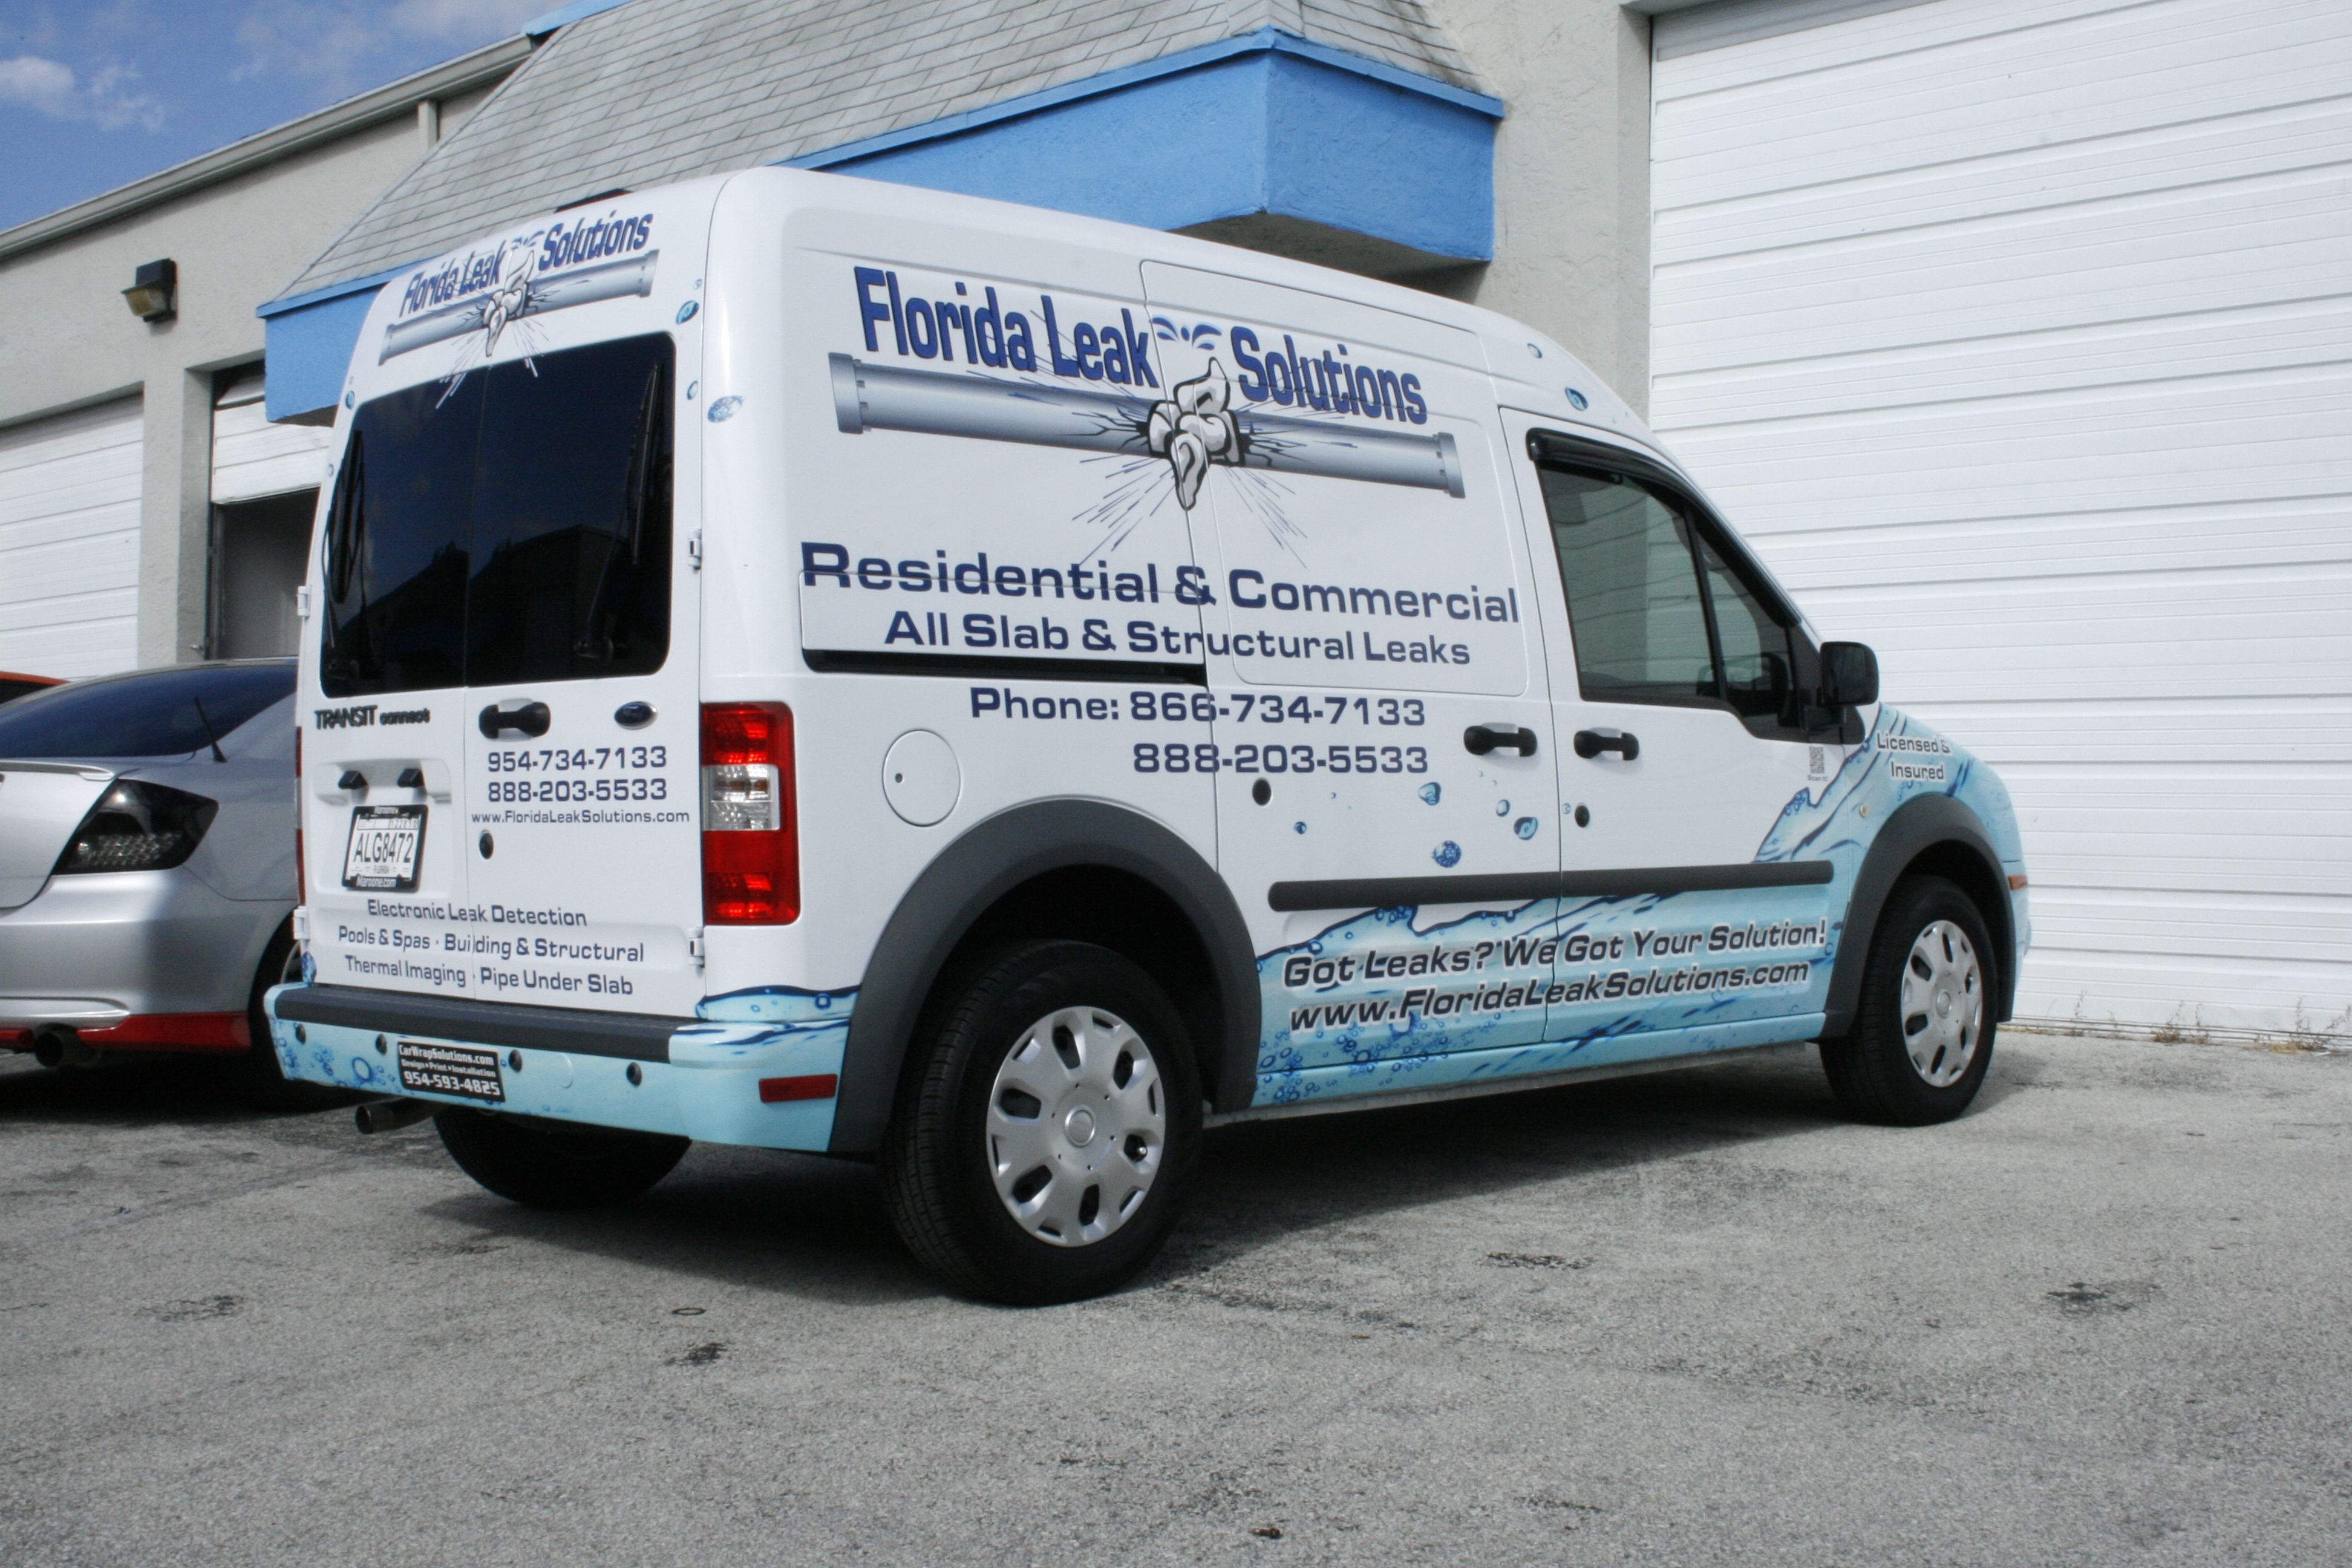 Ford Transit Connect Van Wraps Graphics For Plumbing Businesses